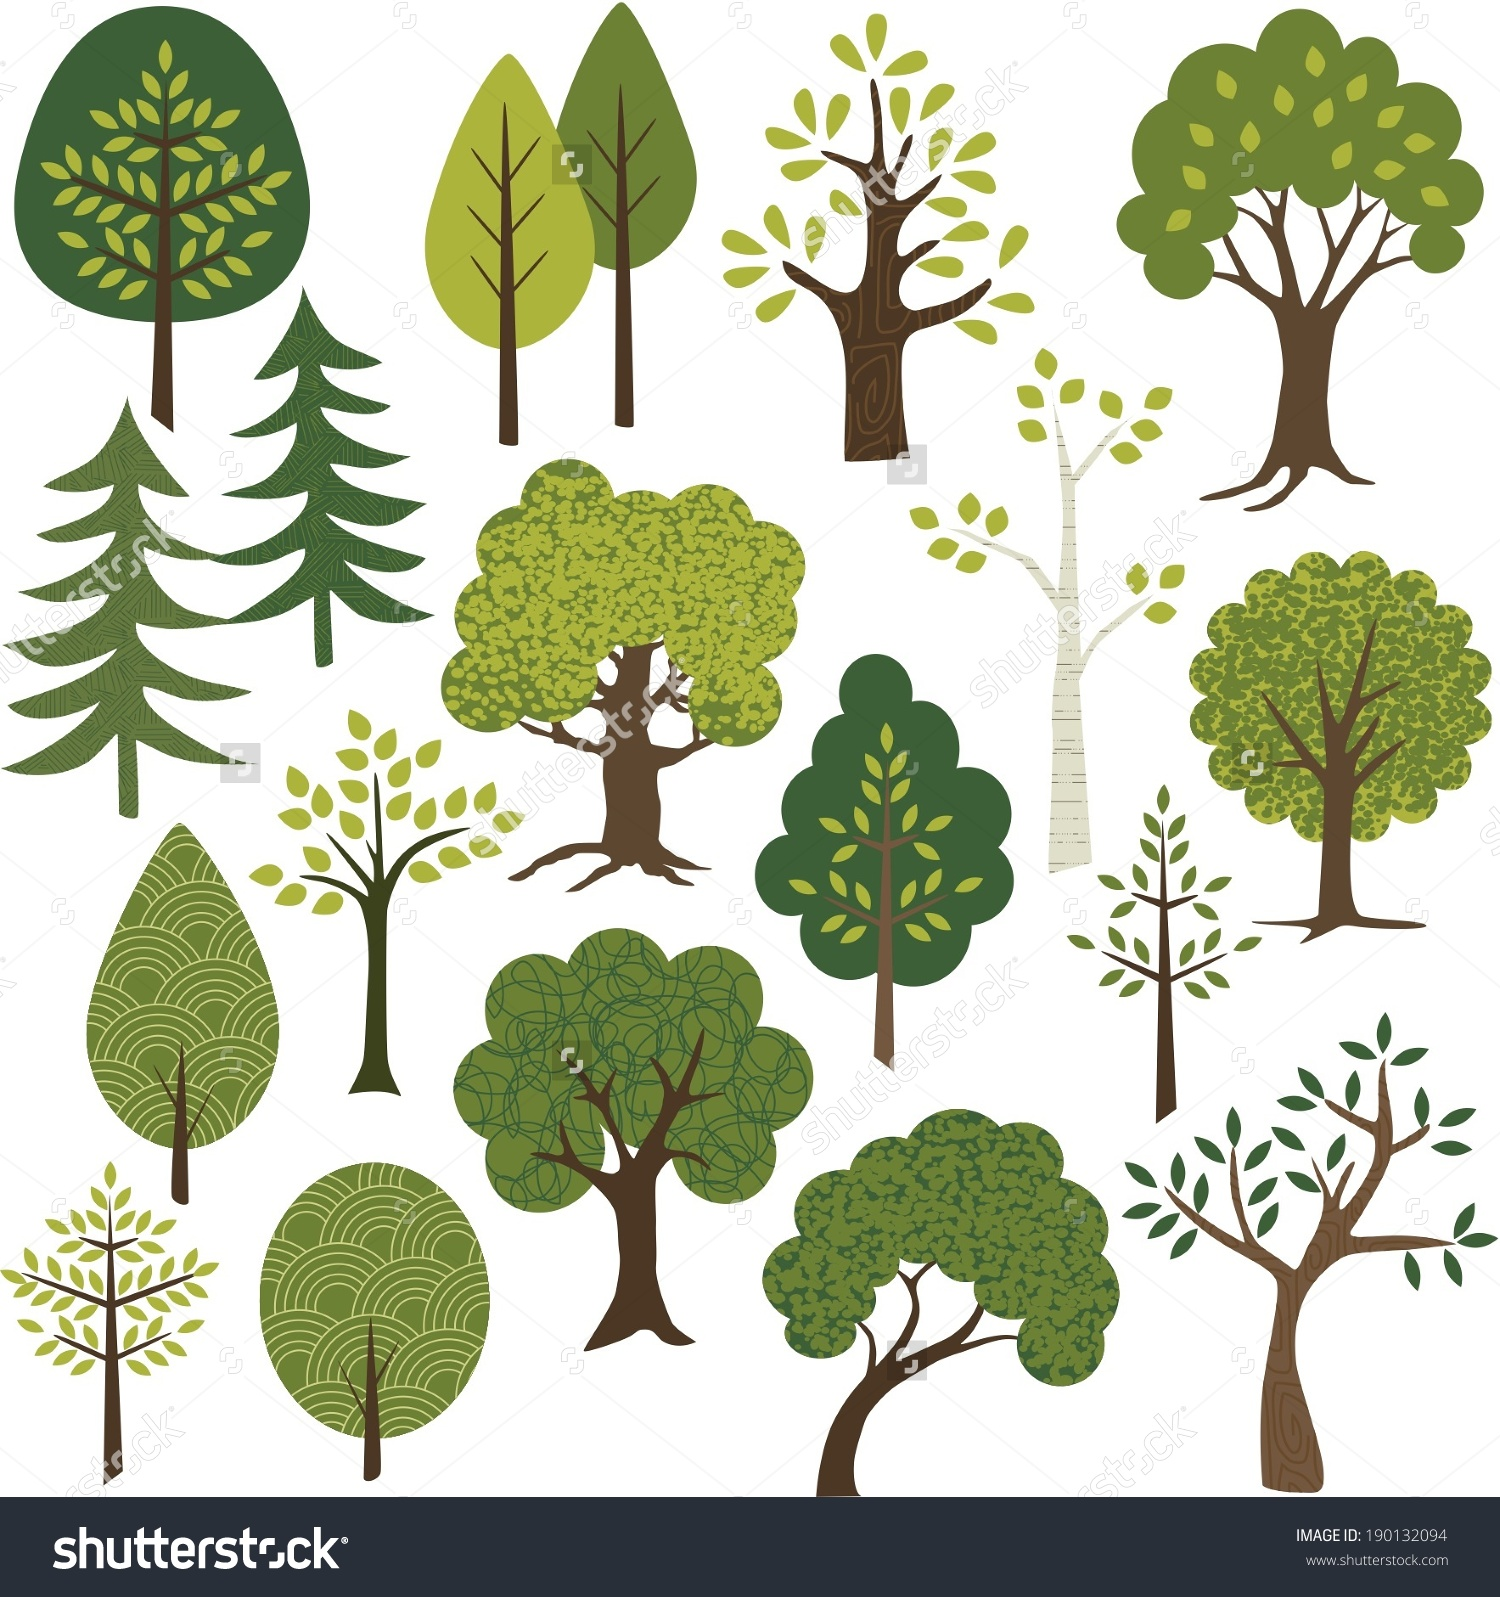 Tree Clip Art Stock Vector 190132094.